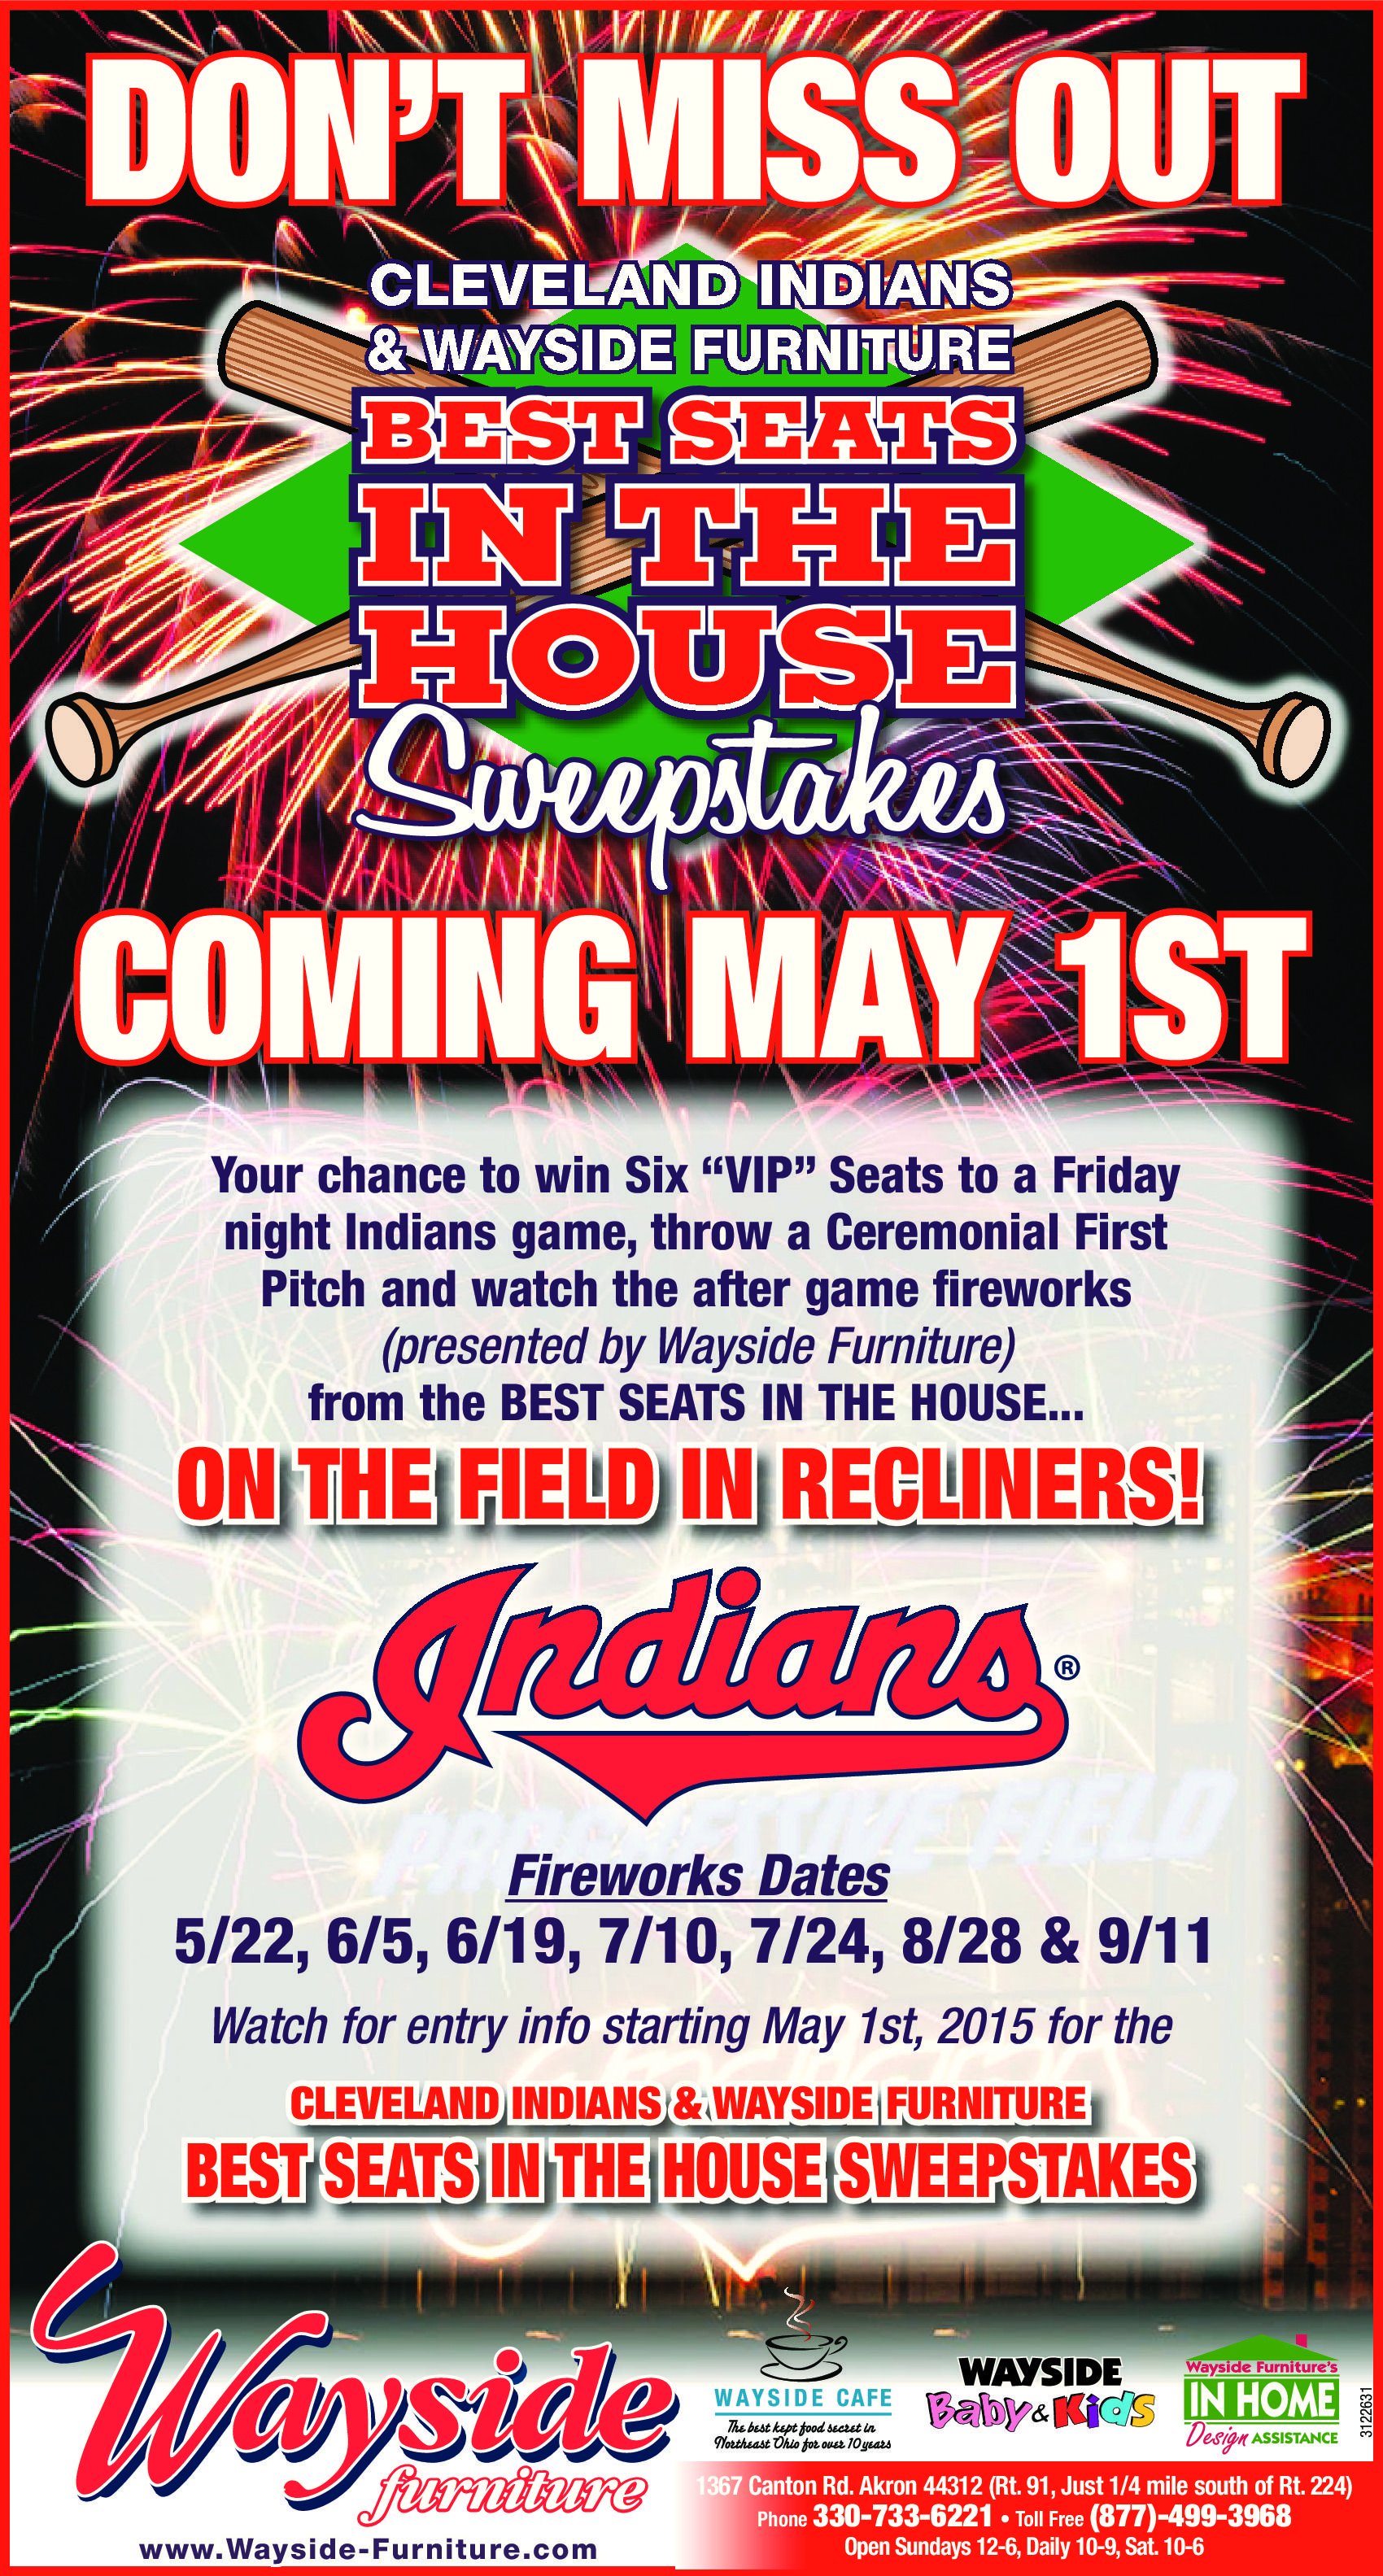 Wayside Furniture Cleveland Indians Bring You The Best Seats In